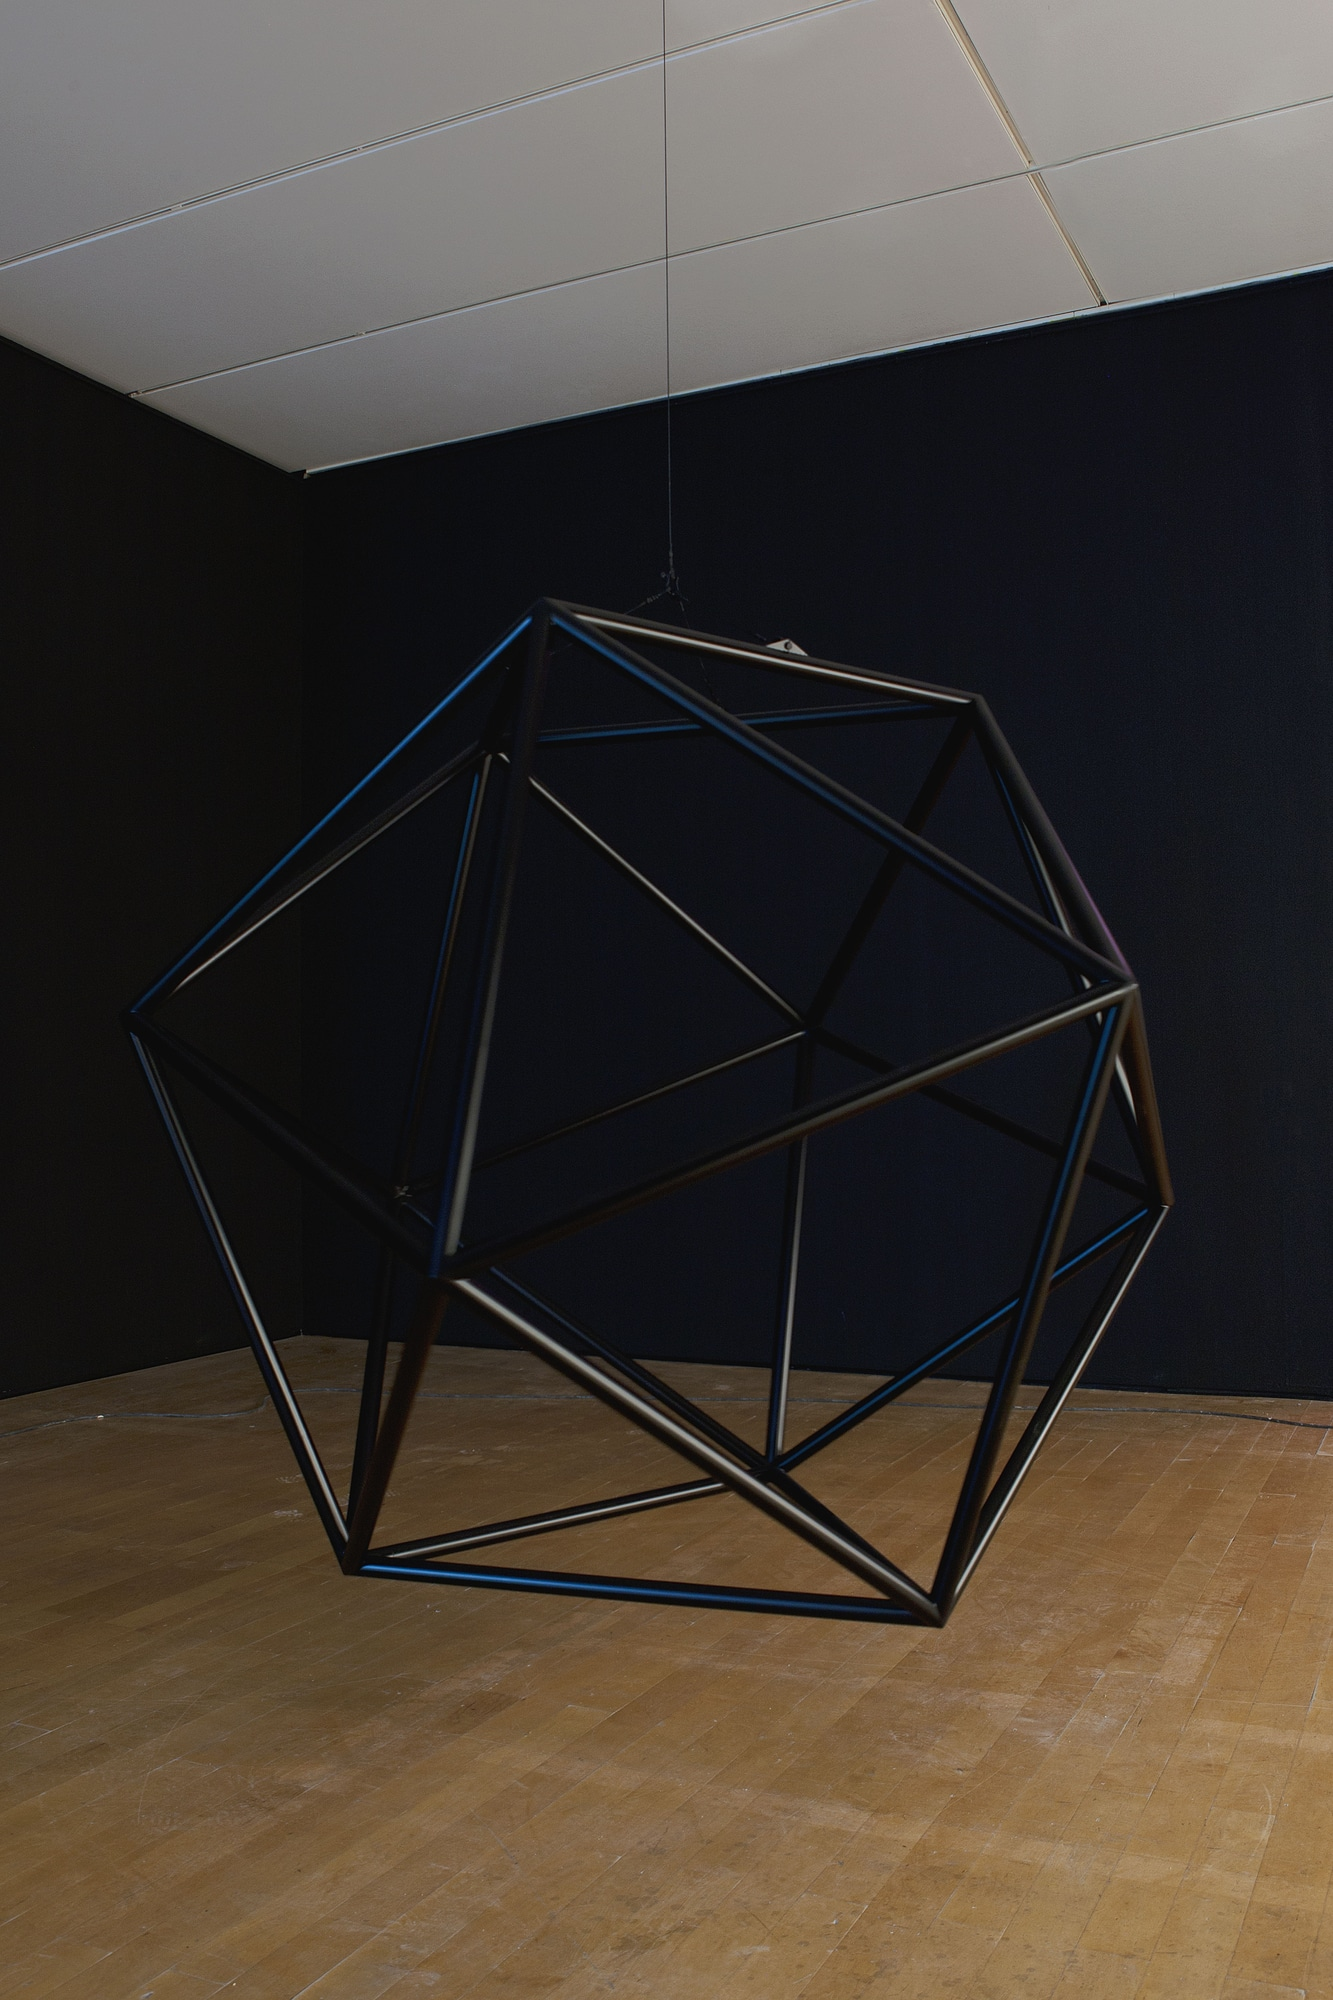 Daniel Firman, Black Icosahedron, 2013 © COPYRIGHT | DANIEL FIRMAN | ALL RIGHTS RESERVED